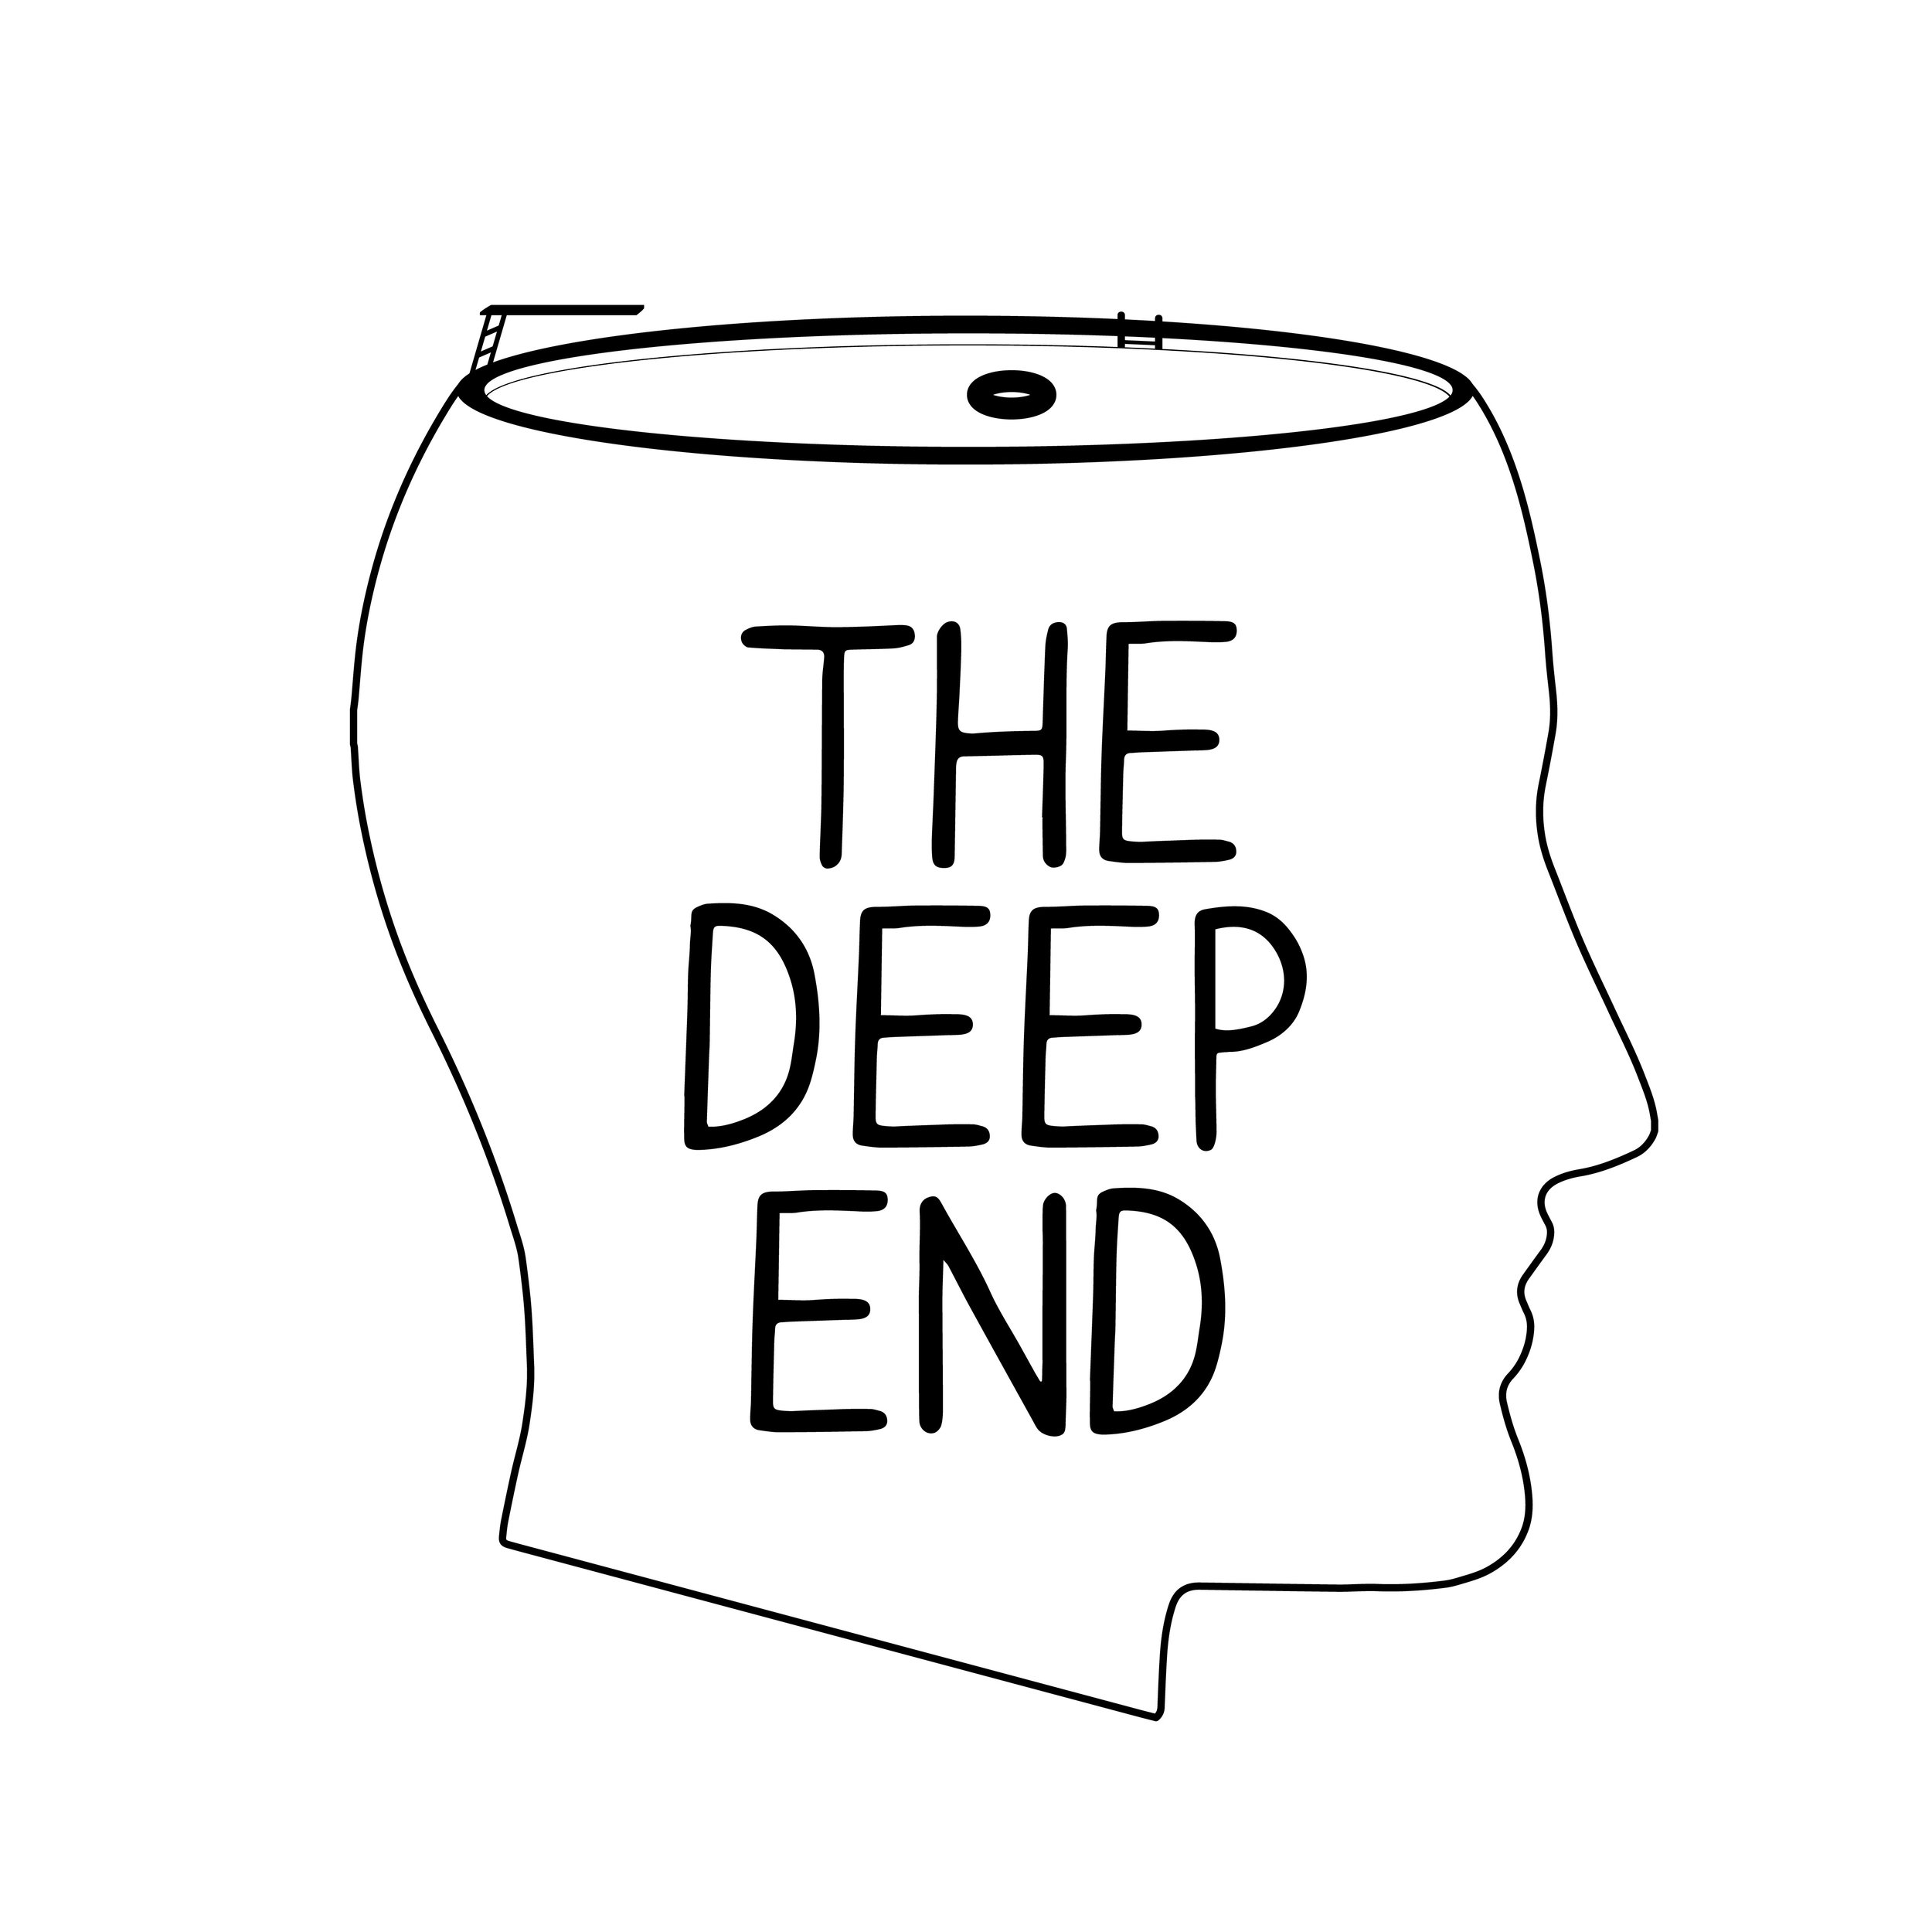 thedeepend-01.jpg